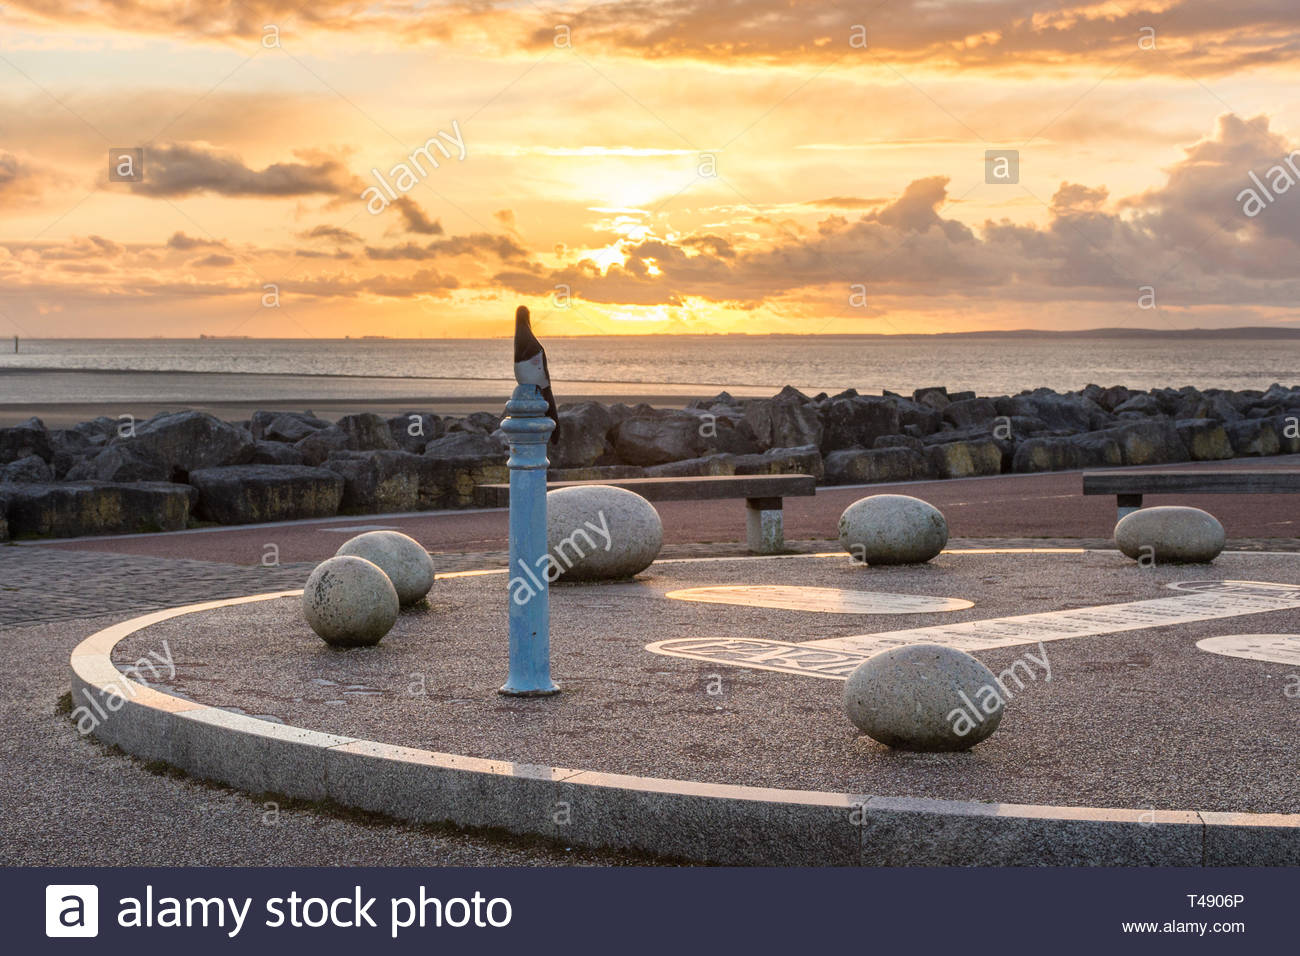 Part of the Tern Project, on the Stone Jetty at Morecambe, Lancashire, England, UK as the sun sets over Morecambe Bay - Stock Image